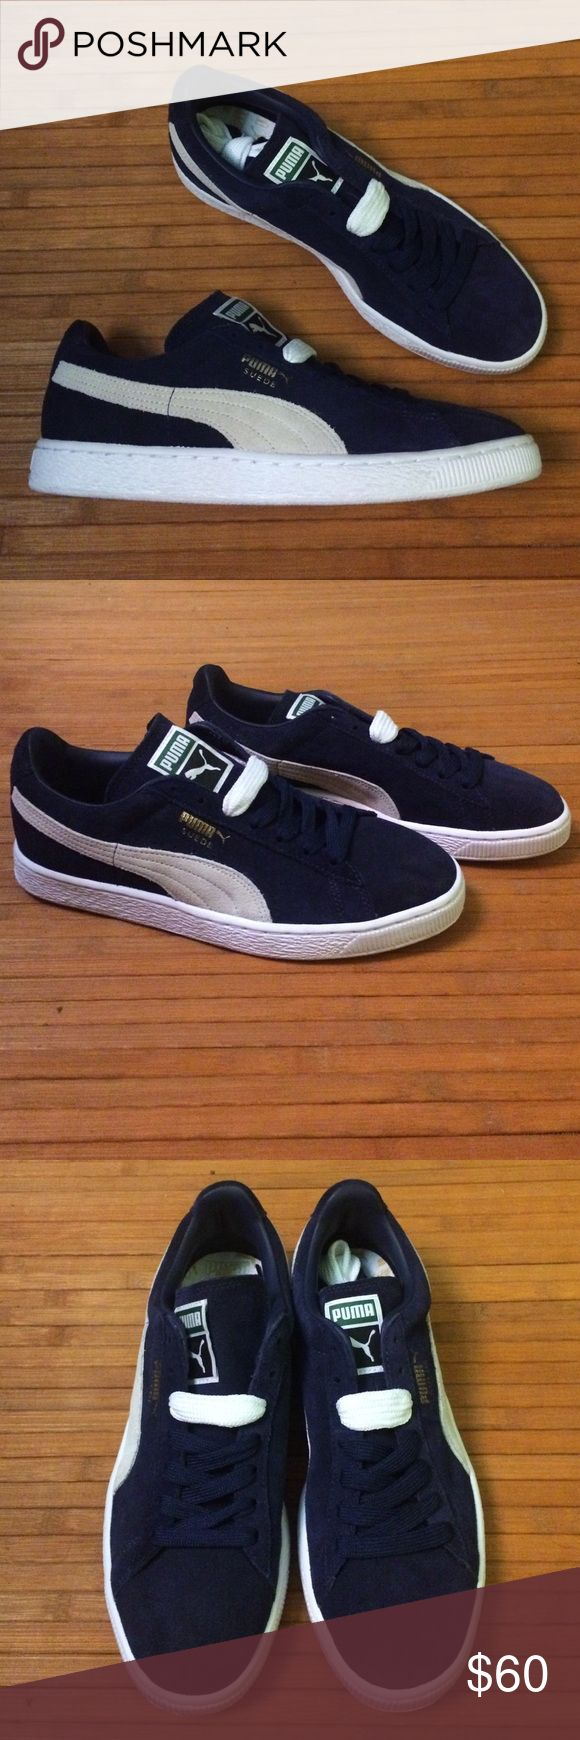 NWOB Navy Puma Suedes In great condition. Never been worn. No signs of visible damage. Puma Shoes Sneakers